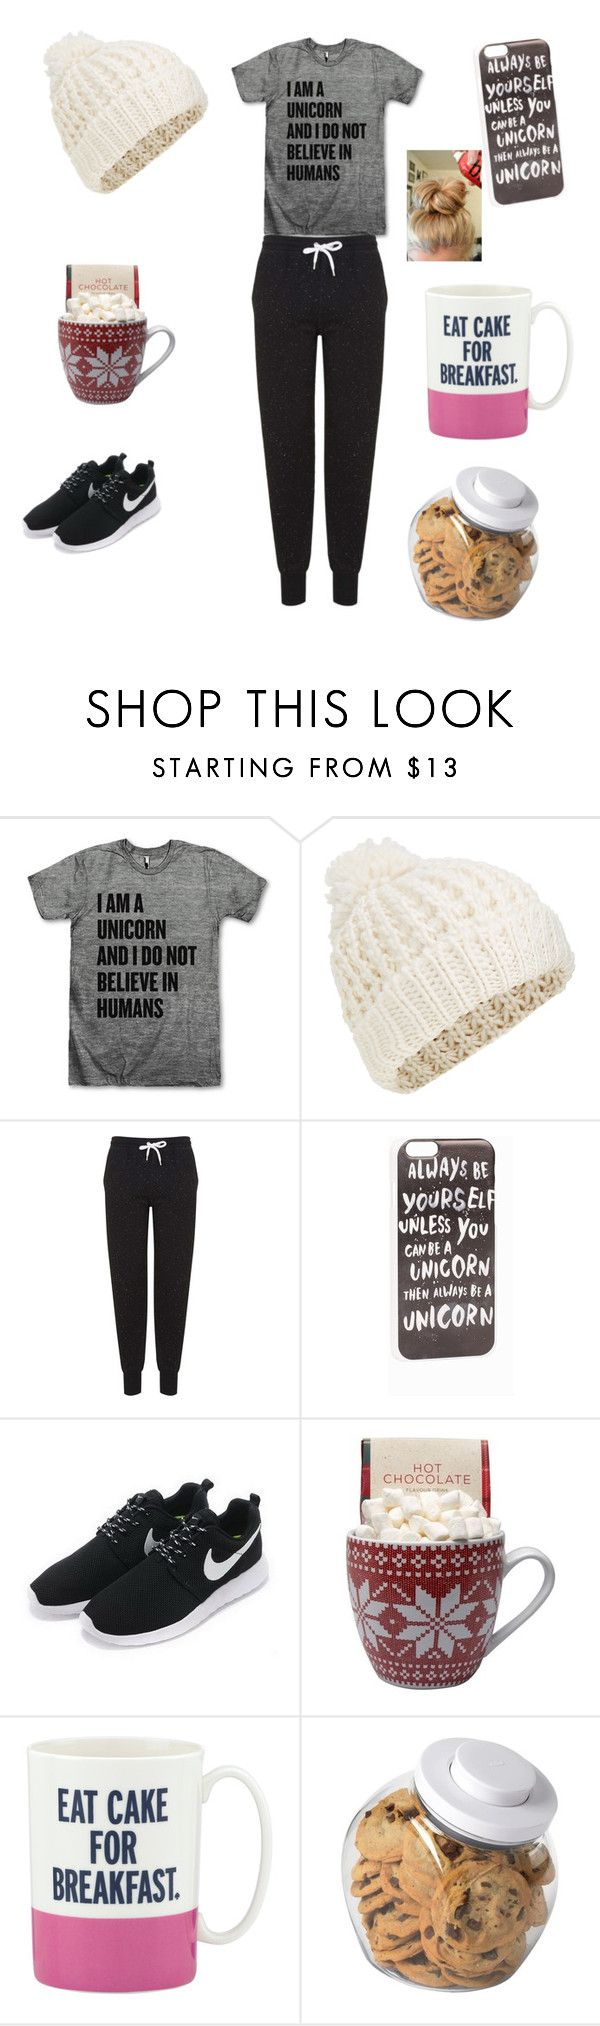 """A lazy day look"" by raquate1232 ❤ liked on Polyvore featuring Accessorize, Topshop, JFR, NIKE, Kate Spade and OXO"